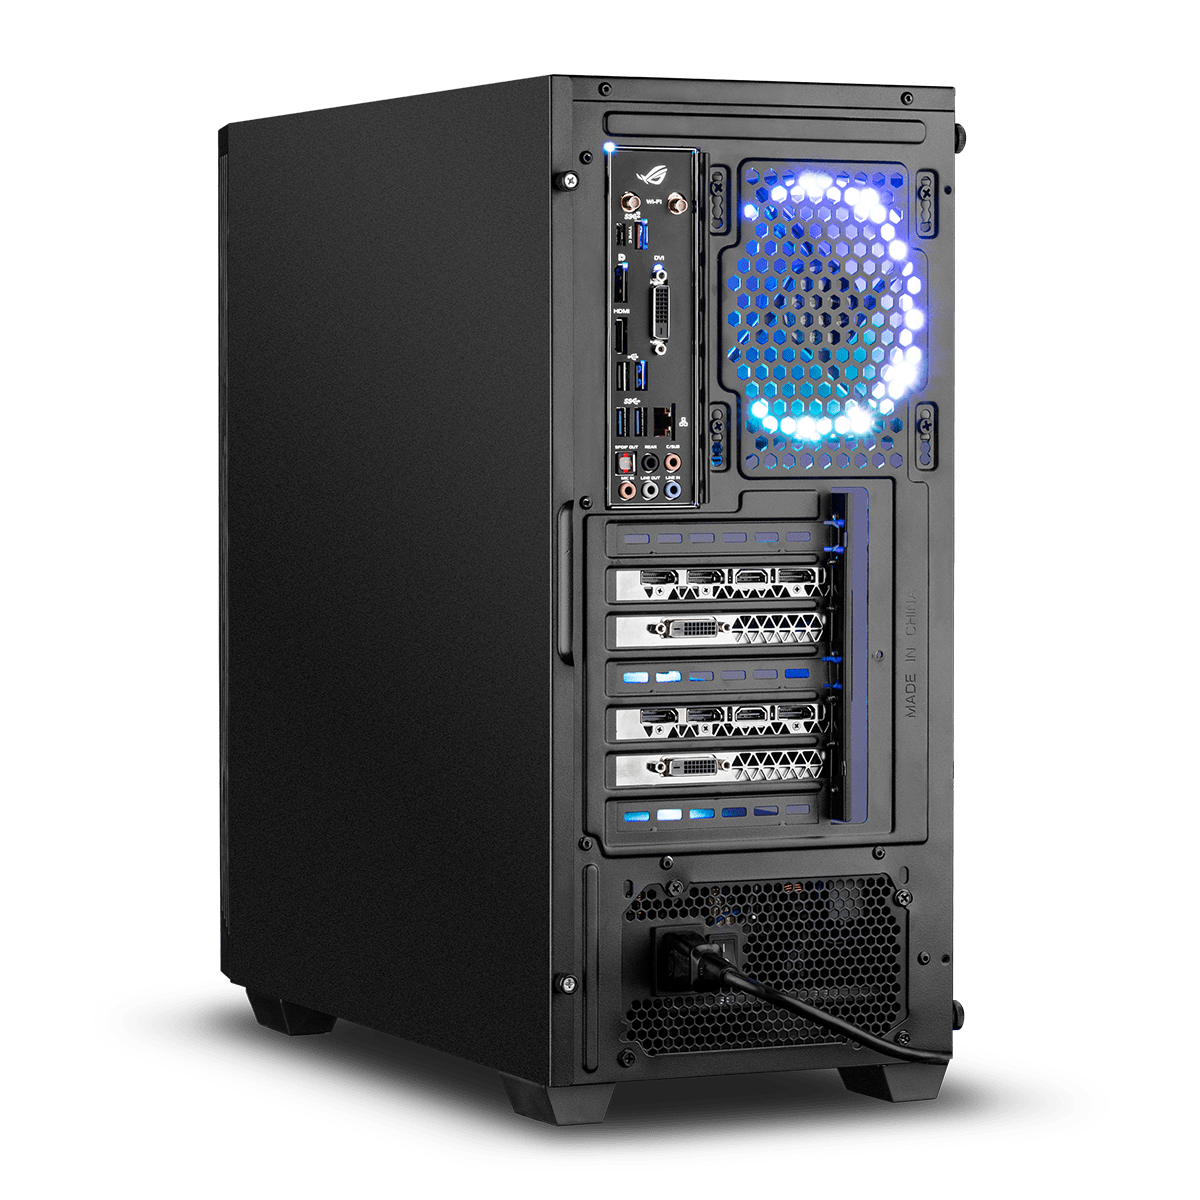 iBuypower Gaming Desktop: Ryzen 7 2700X, RGB Gaming Case, Liquid Cooling, 16GB DDR4 3200, 500GB SSD, 512GB PCIe SSD, GTX 1660 Super, 600W Gold PSU, No-OS @ $675 + F/S